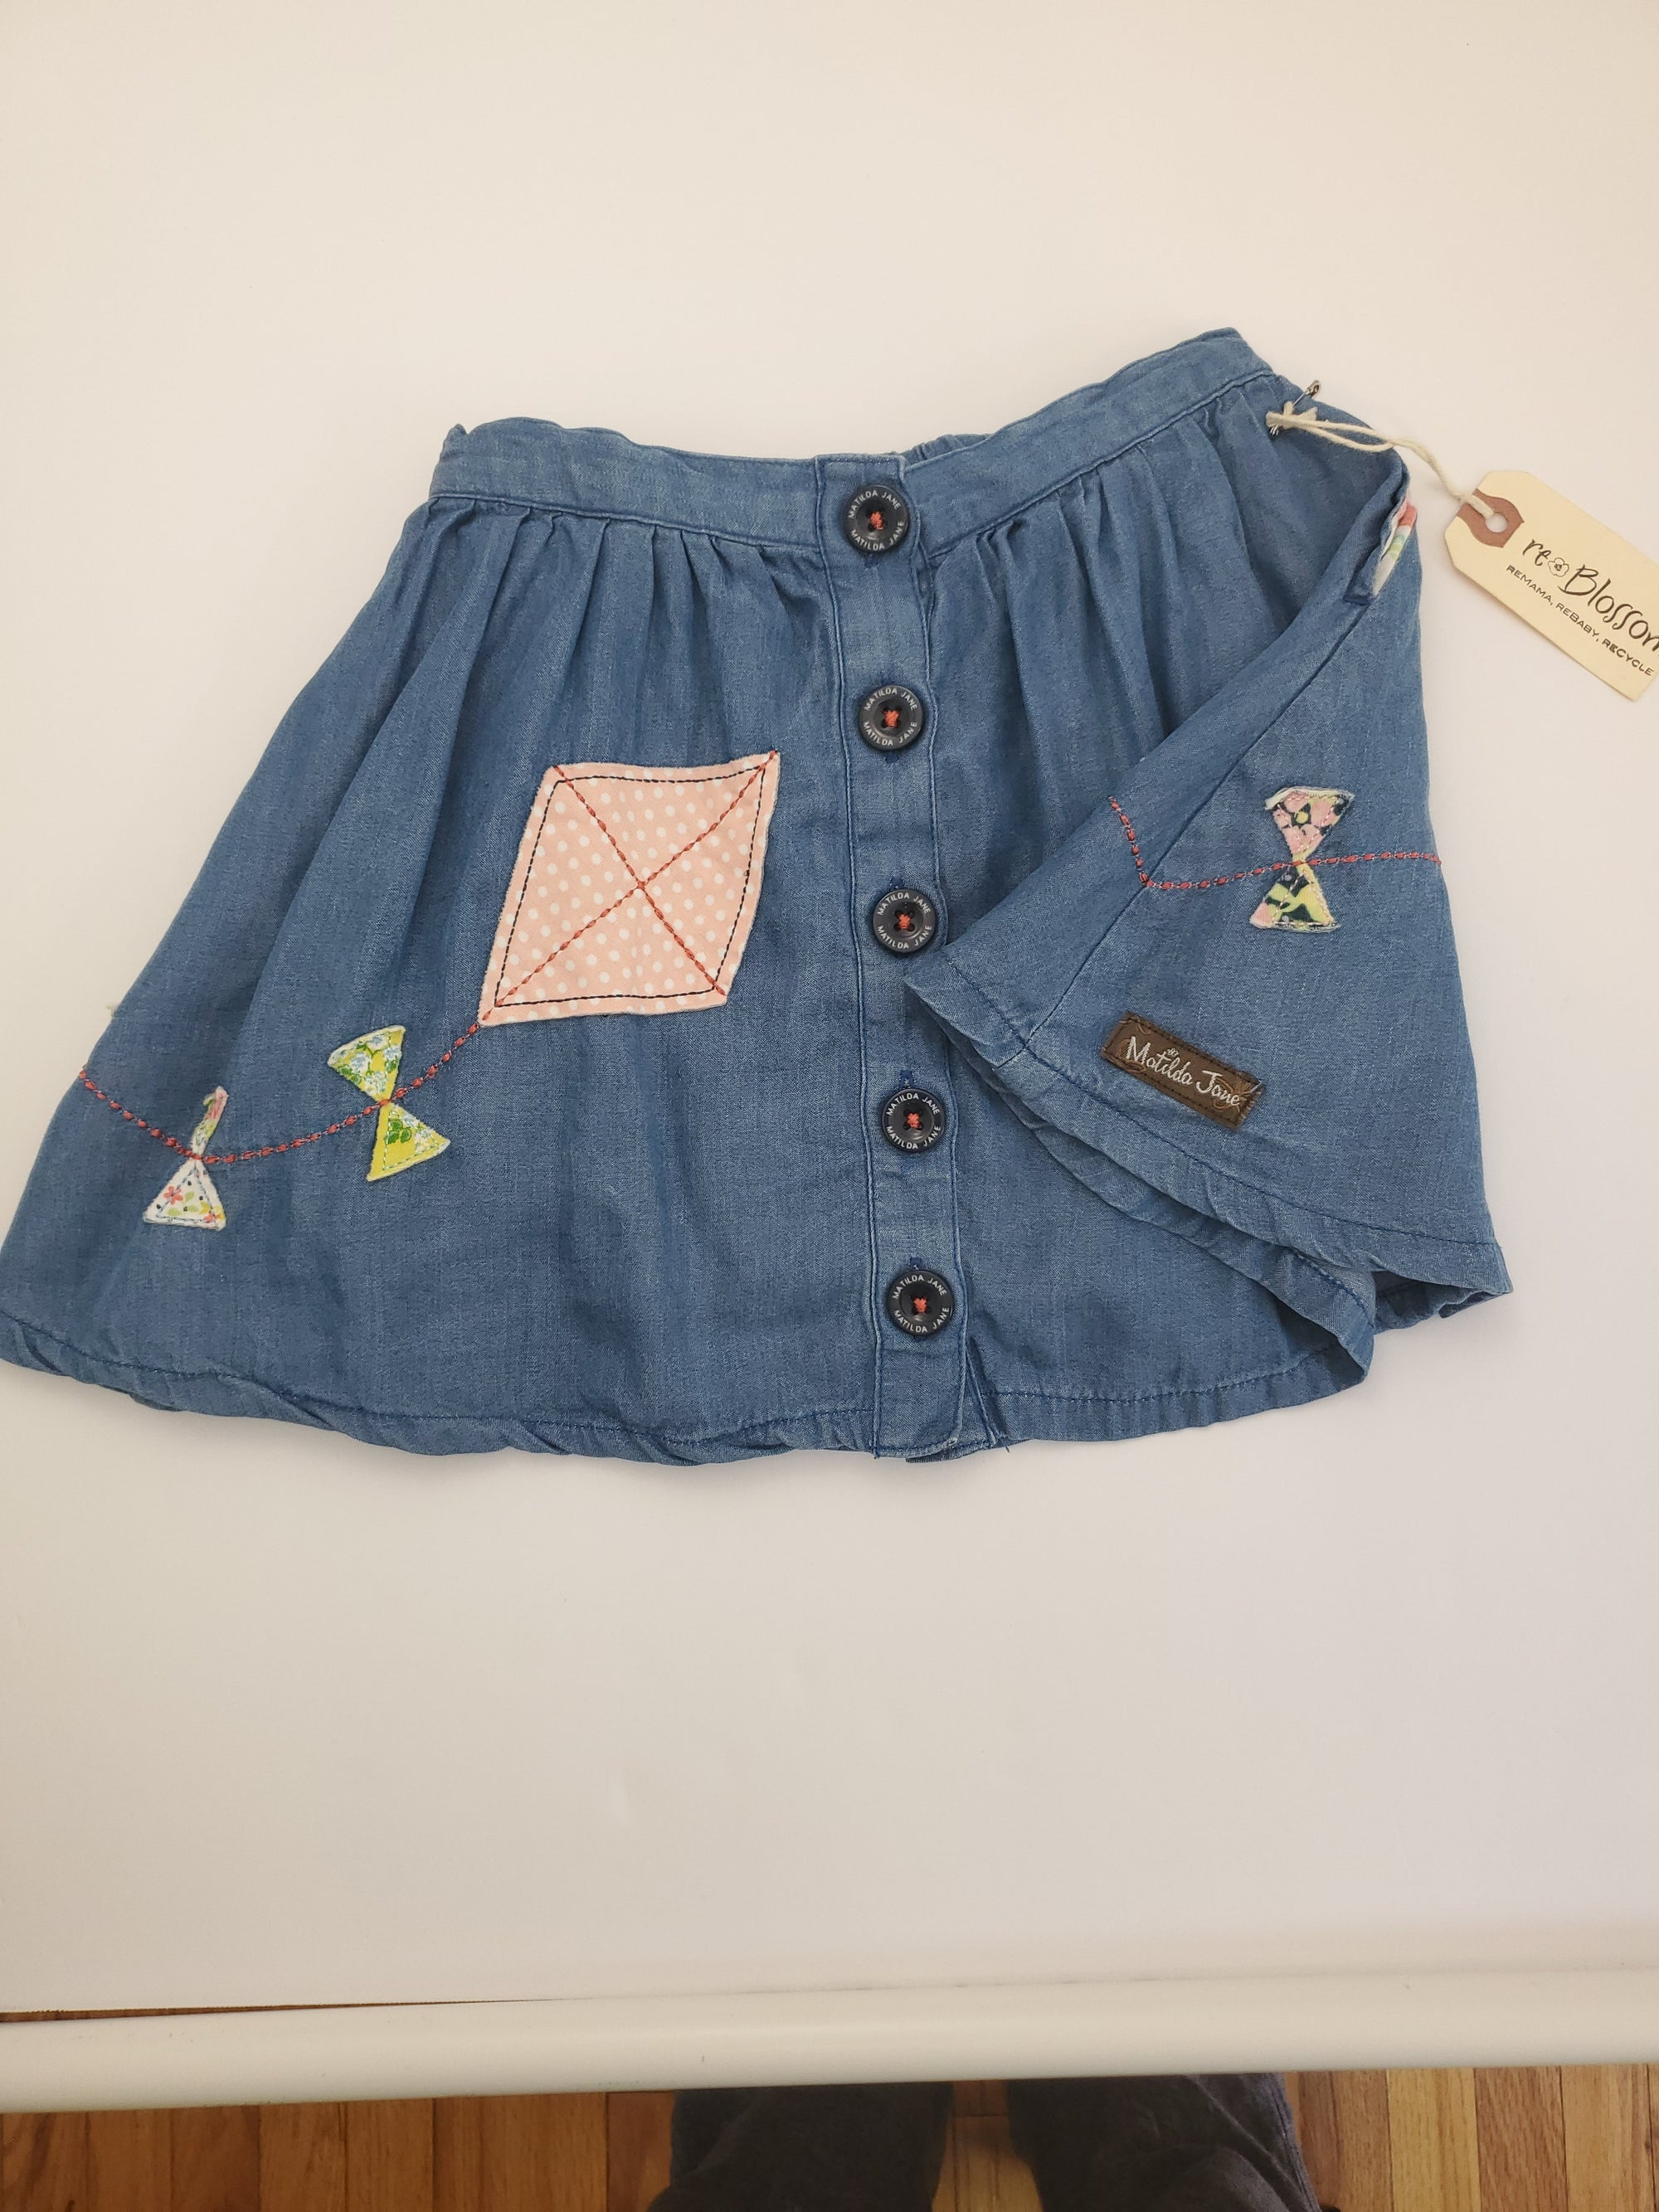 Resale 2T Matilda Jane Denim Kite Skirt